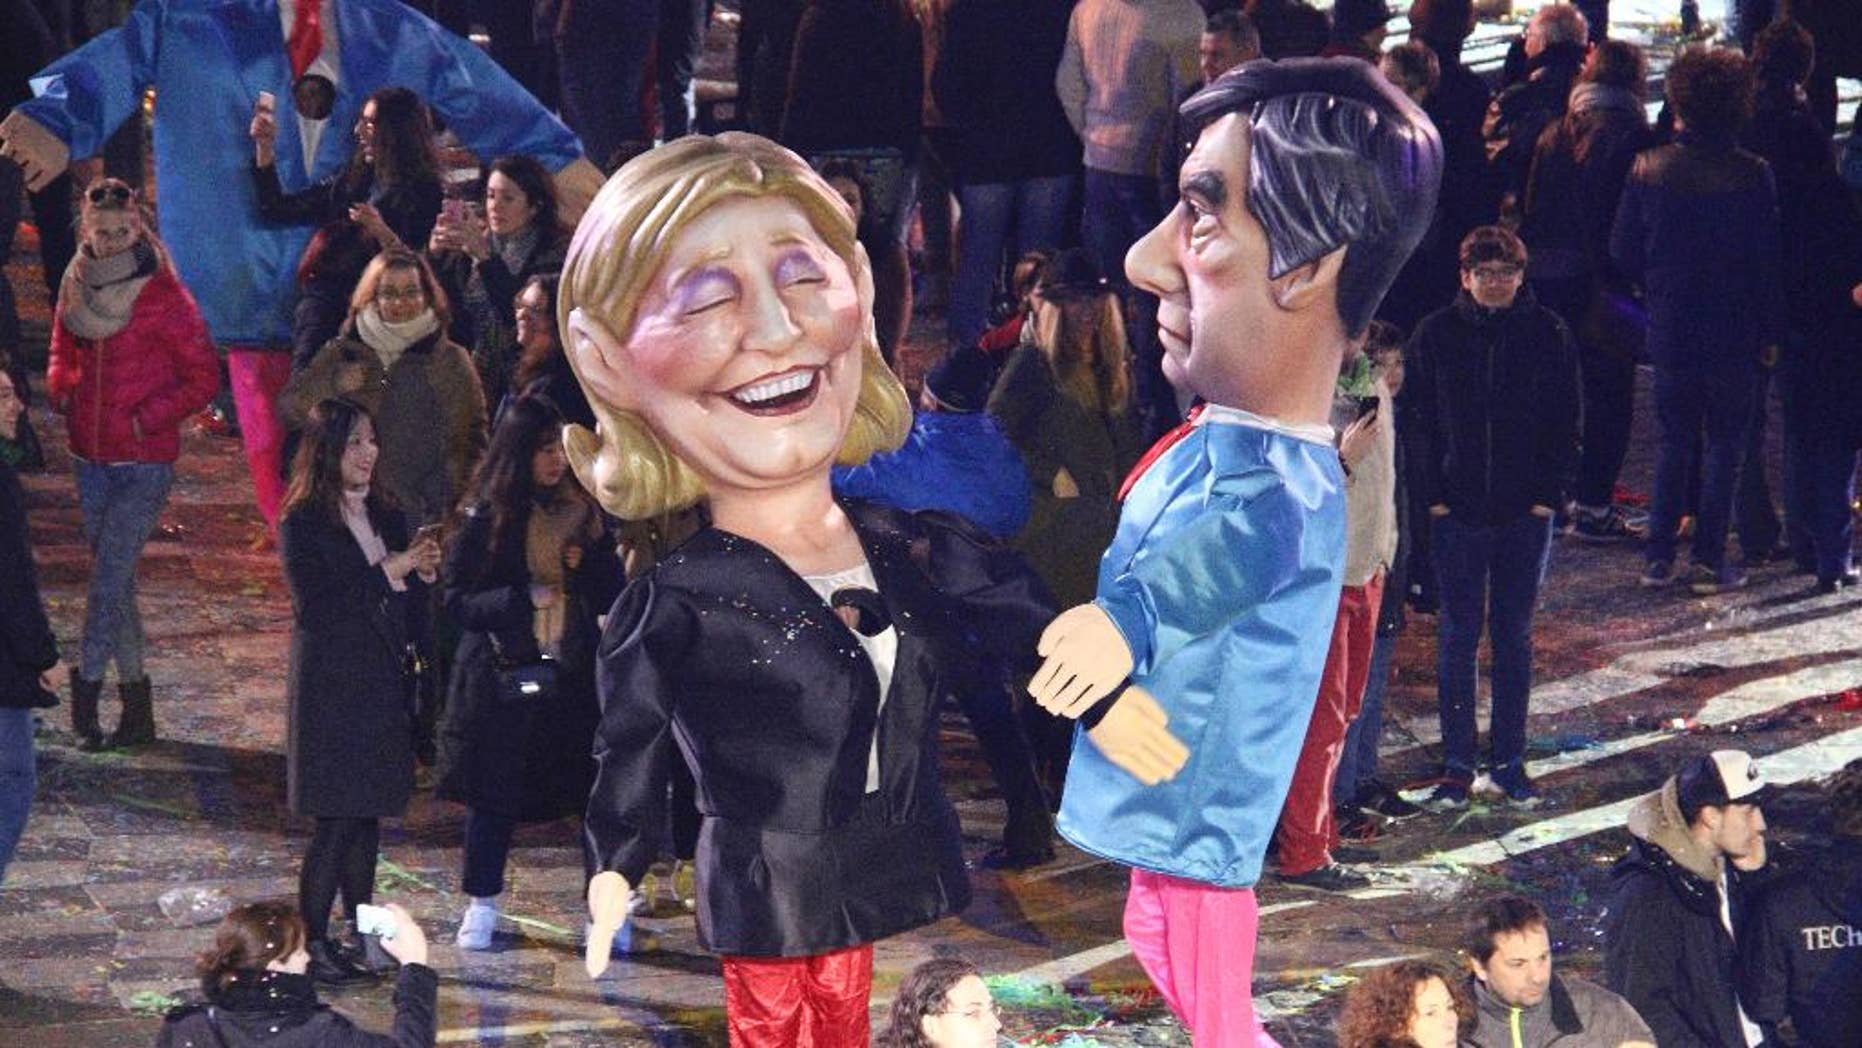 Big heads of French presidential candidates, Marine Le Pen, left, of the far-right National Front, and Francois Fillon of the right-wing Republicans party, join the Nice Carnival parade, Saturday, Feb. 11, 2017, in Nice, southeastern France. Floats in the Carnival's 133rd edition that kicked off on Saturday were led by the King of Energy, this year's theme, and followed notably by a huge Donald Trump with hair dryers trained on his crown of blond hair. (AP Photo/Henri Grivot)